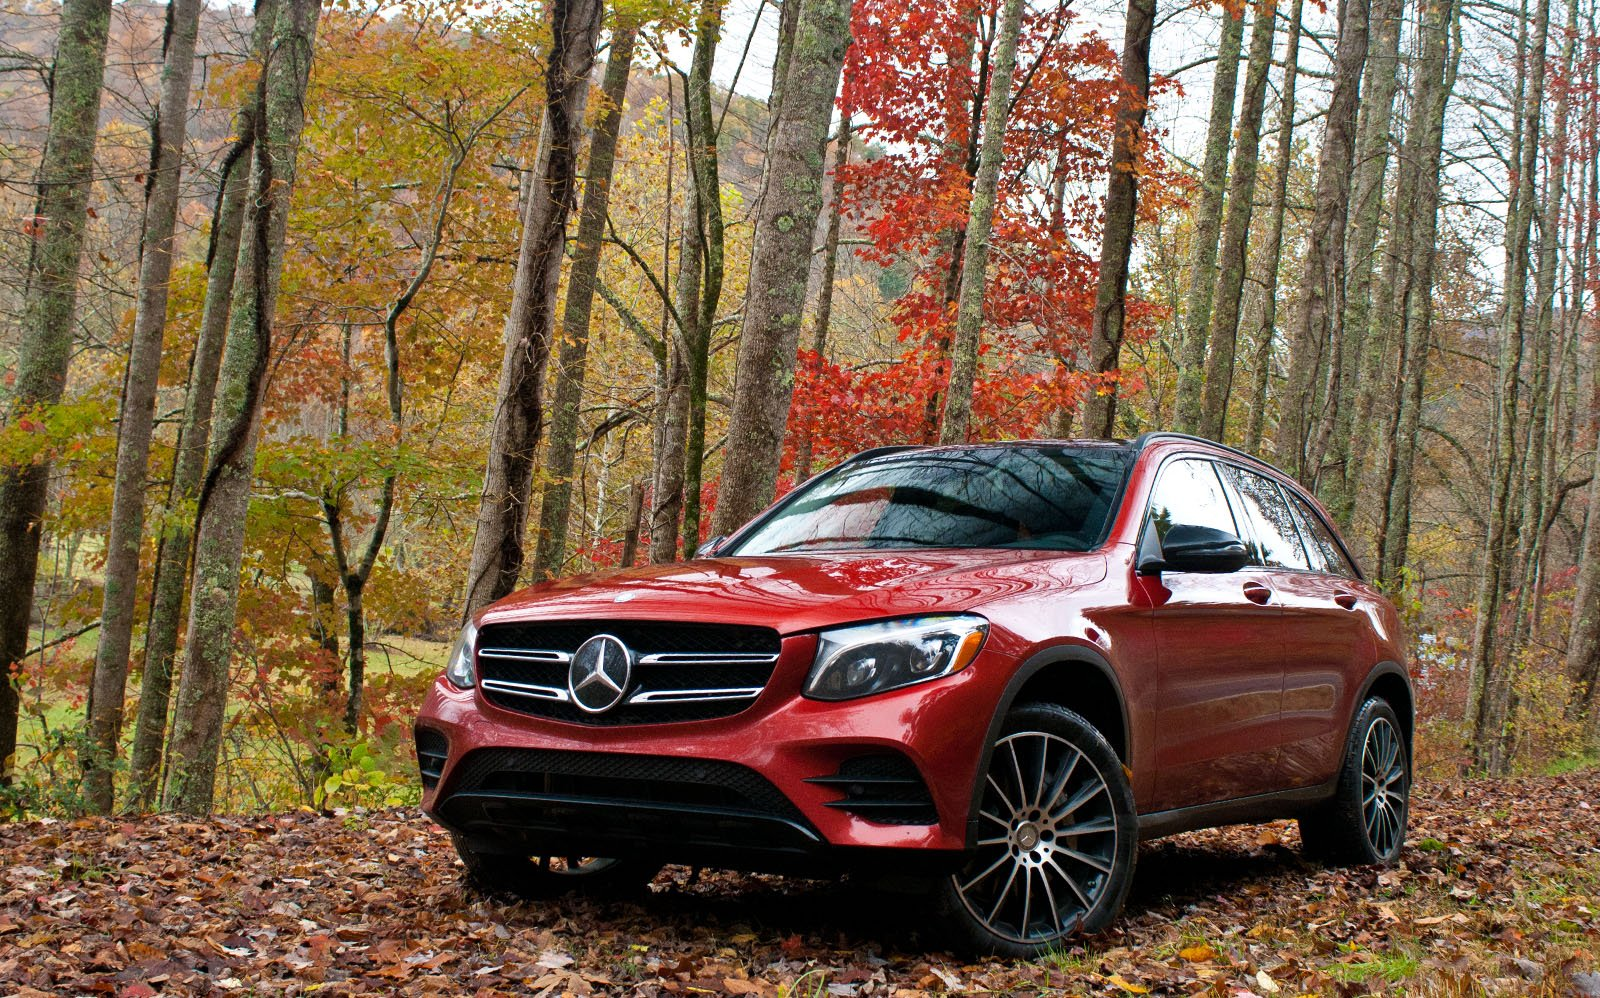 2016 mercedes benz glc 300 4matic review news. Black Bedroom Furniture Sets. Home Design Ideas